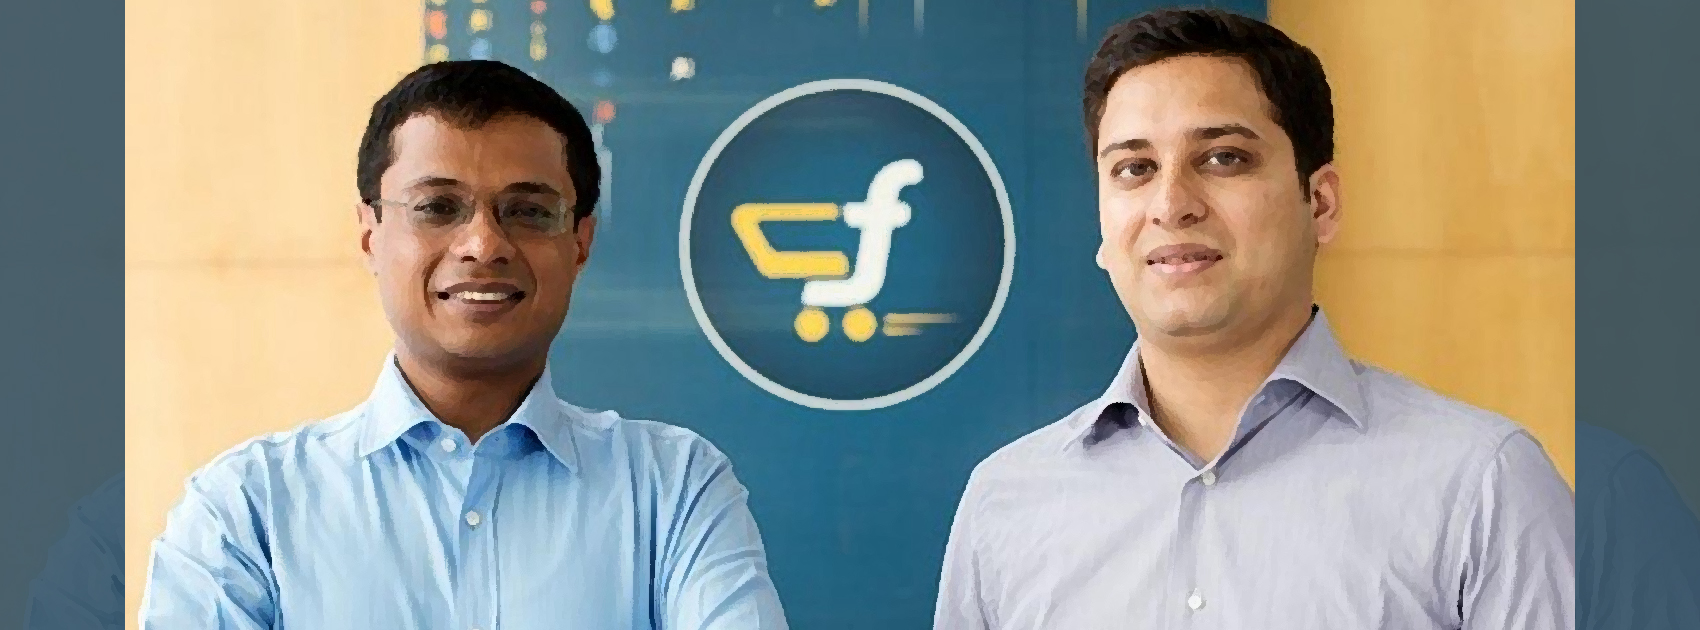 Binny Bansal Breaks Ice On Sachin Bansal,Binny Bansal Breaks Sachin Bansal,Sachin Bansal Exit From Flipkart,Startup Stories,Startup News India,Latest Business News 2018,Flipkart Business News,Flipkart Group CEO,Indian Ecommerce Ecosystem,Flipkart CEO Binny Bansal